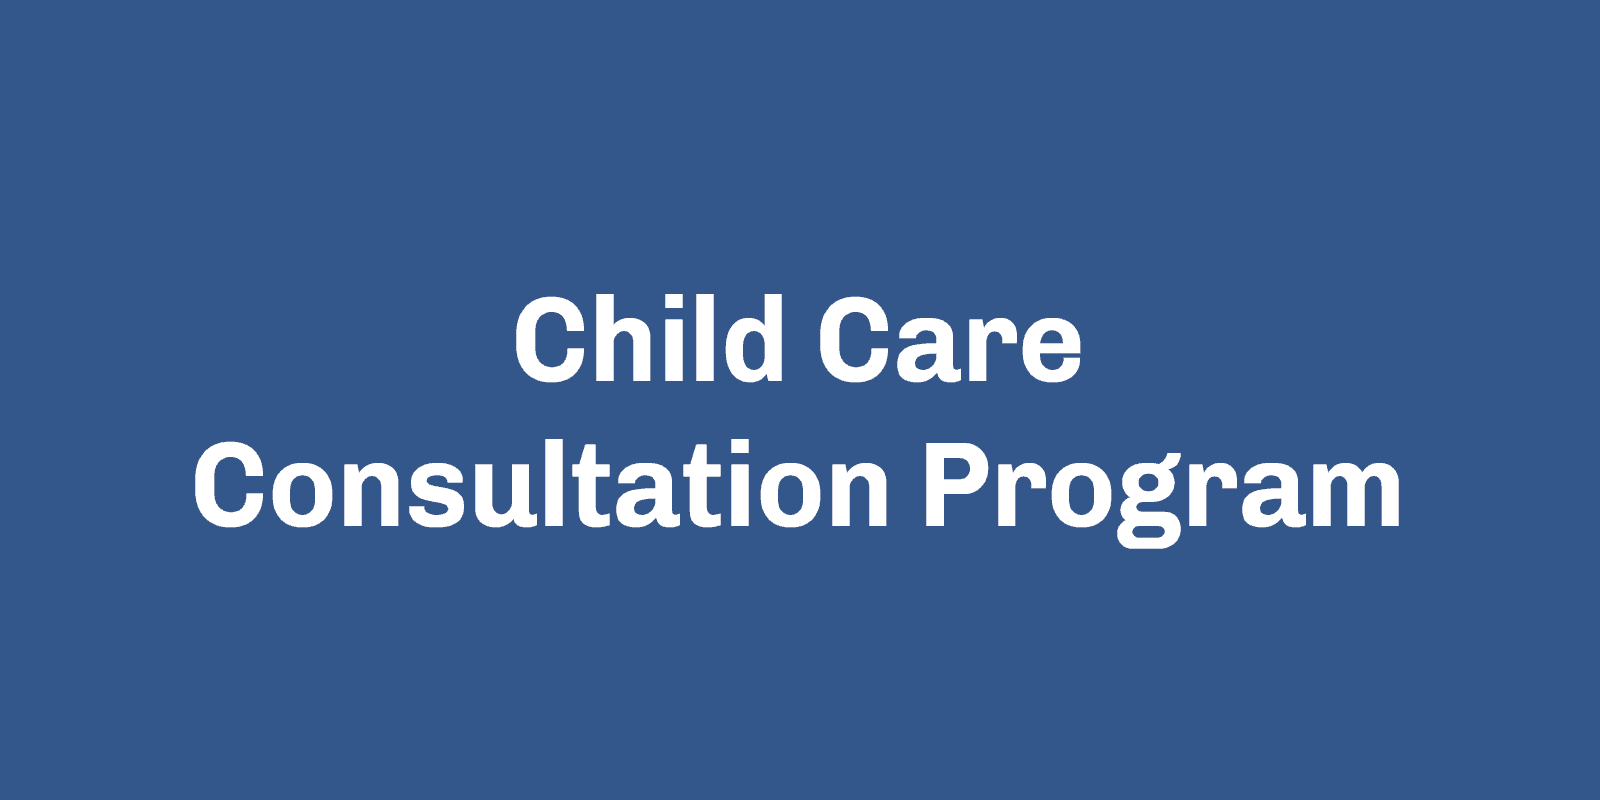 Child Care Consultation Program